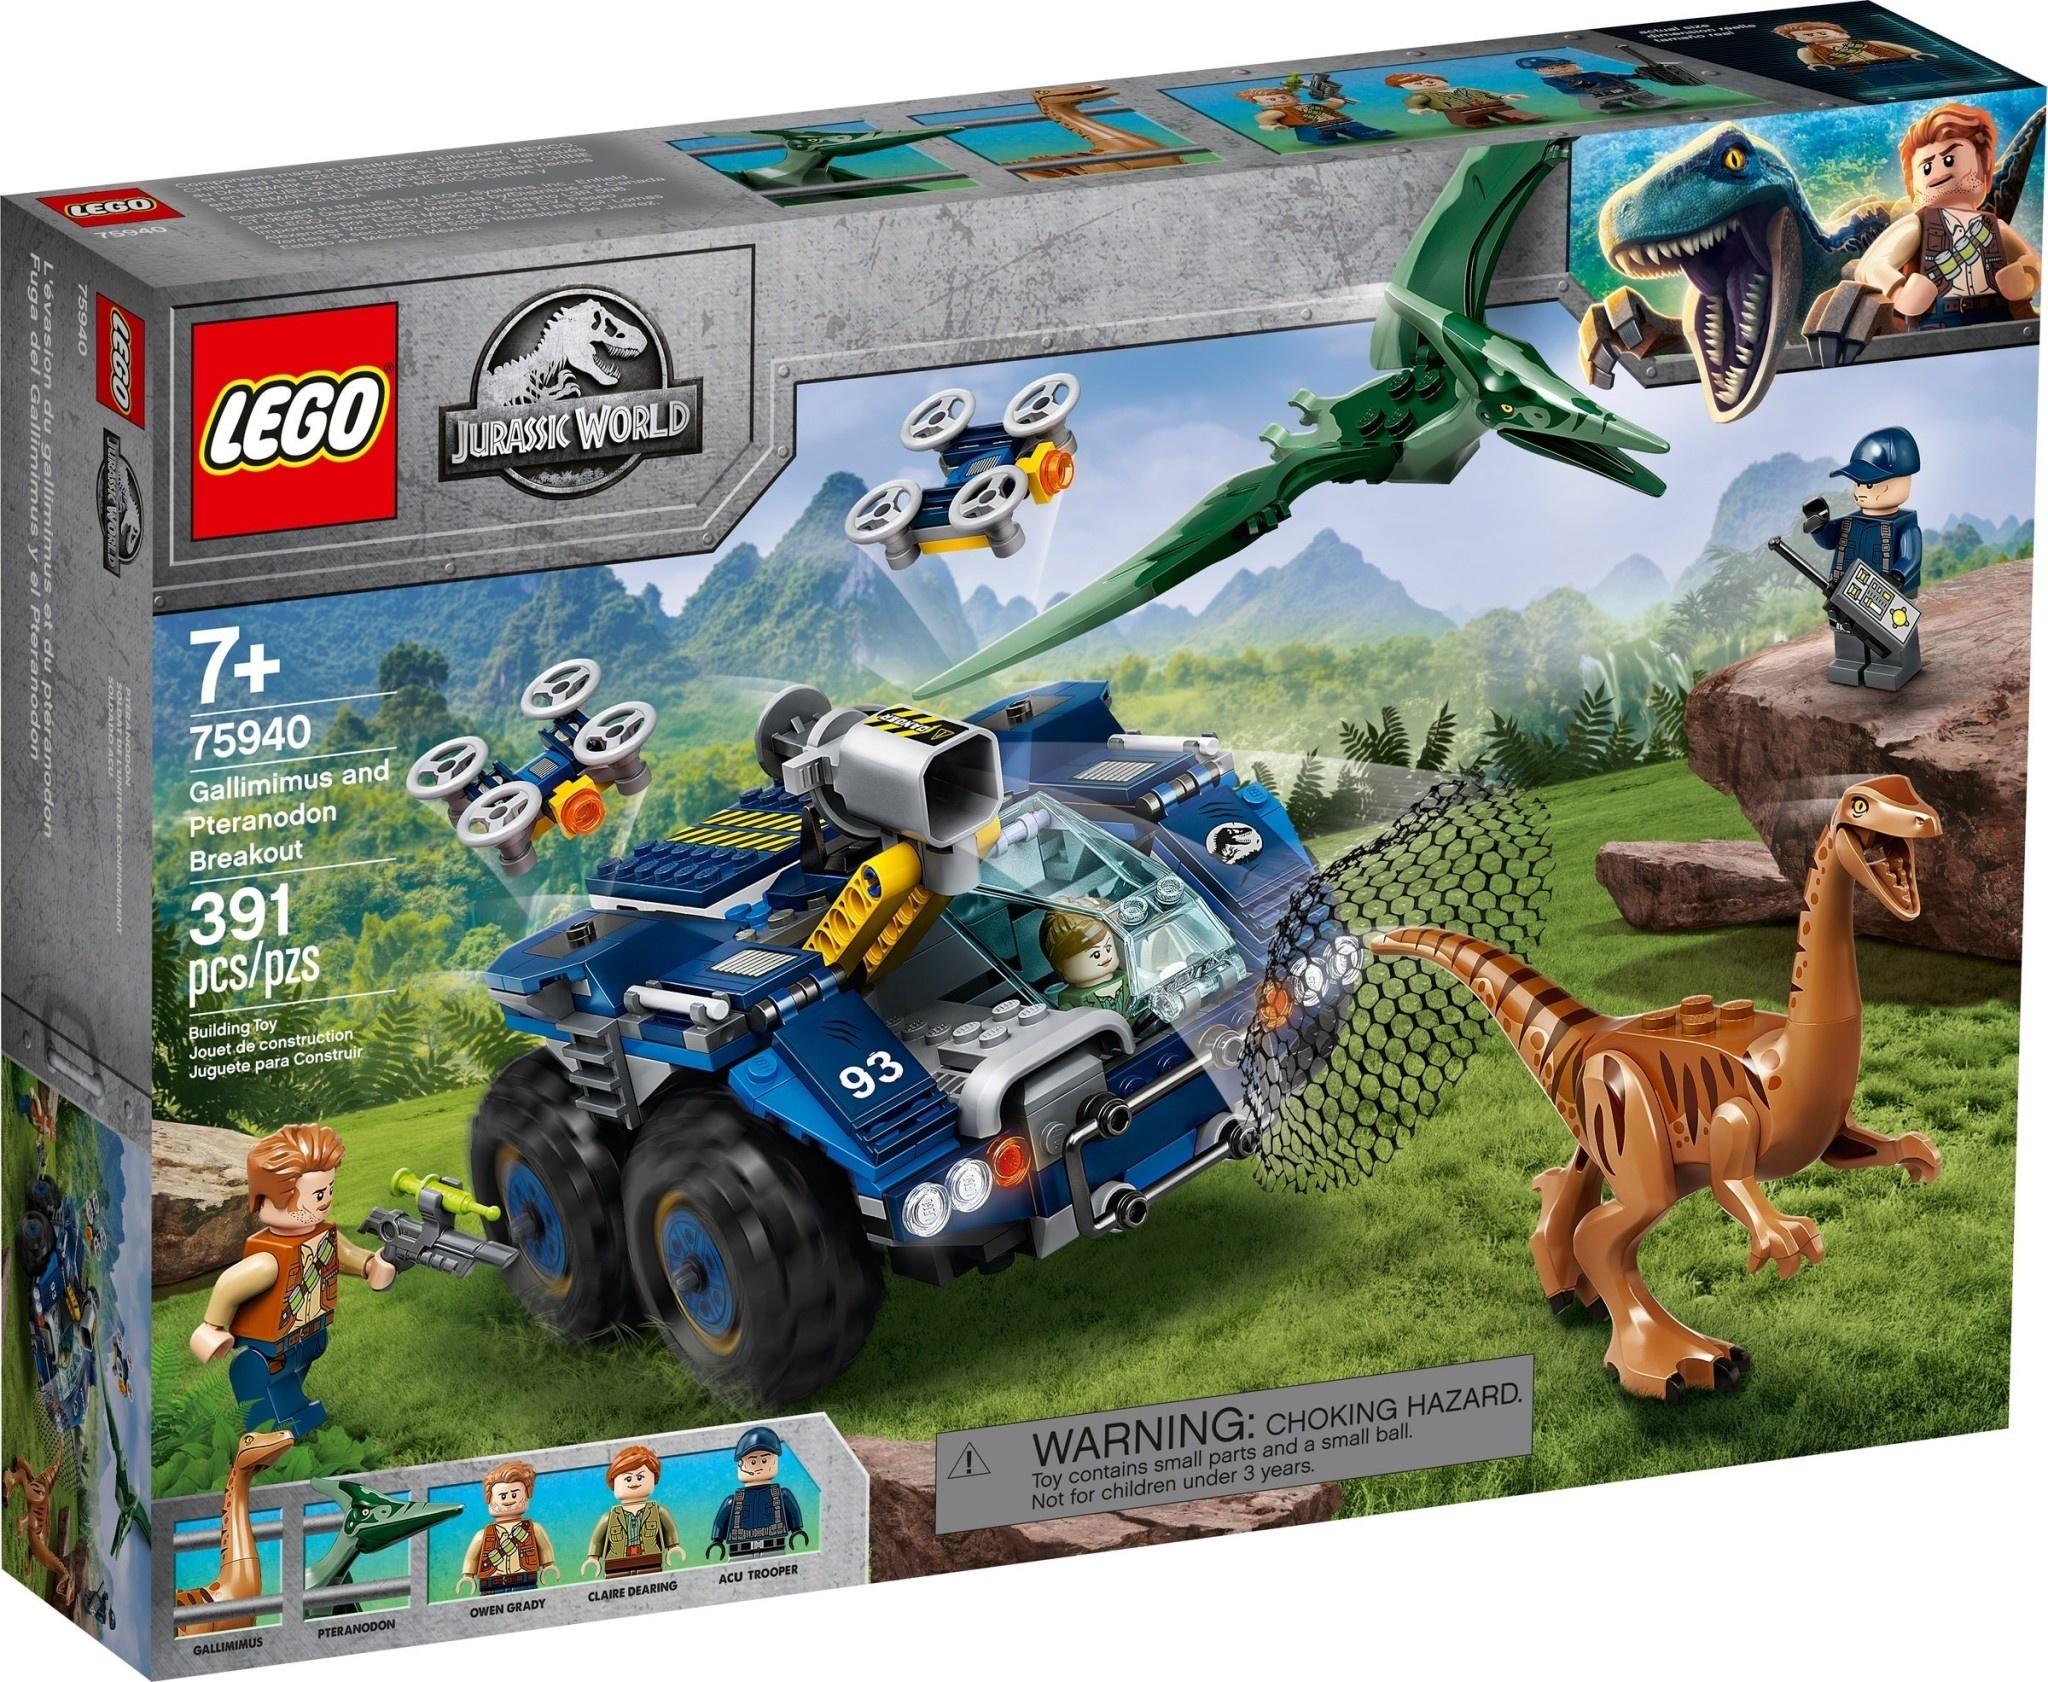 75940 Gallimimus and Pteranodon Breakout by LEGO Jurassic World